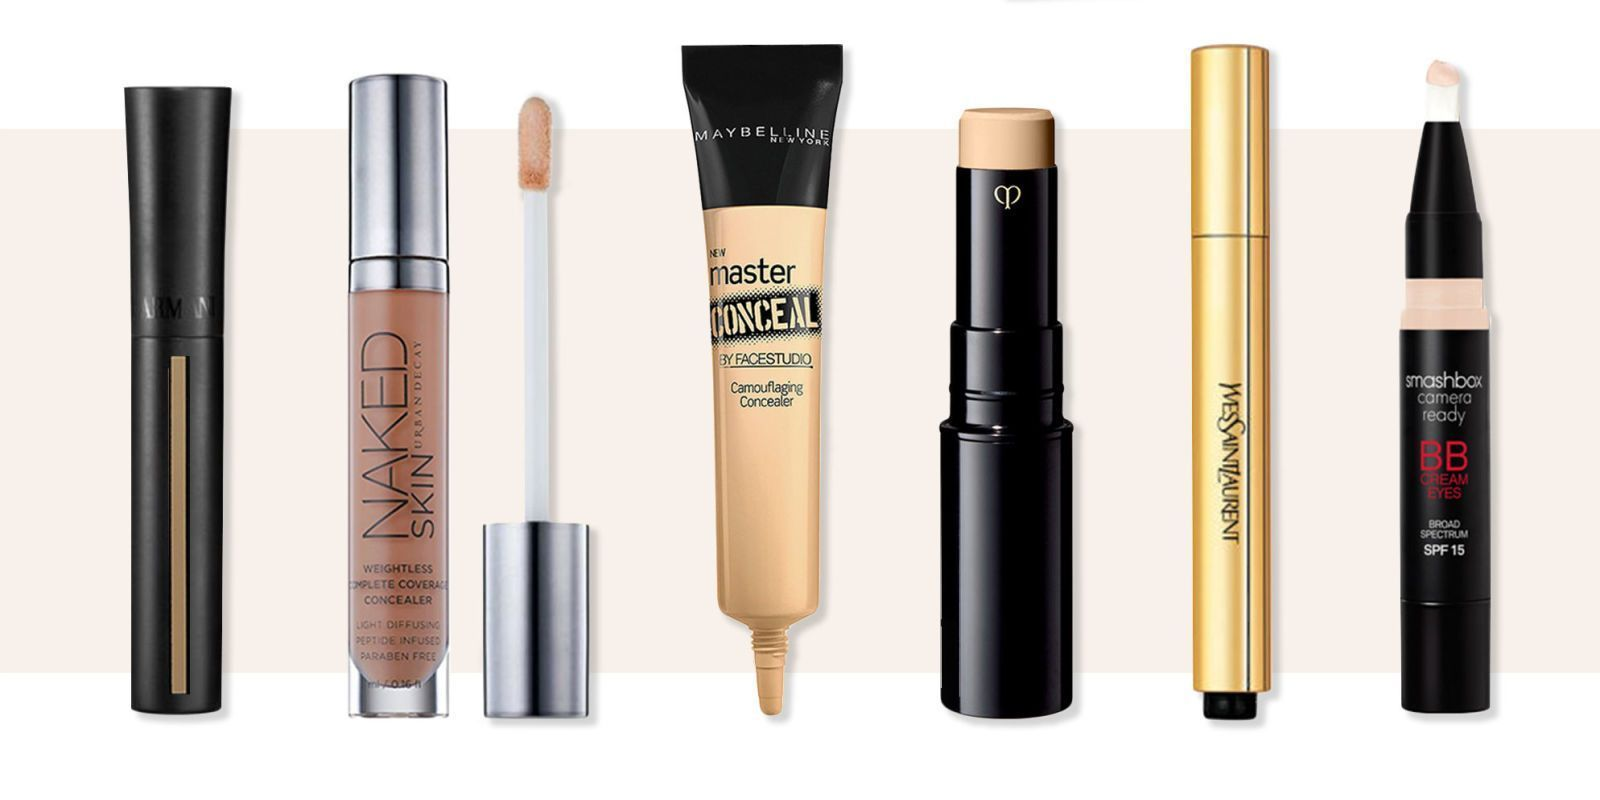 13 Best Under Eye Concealers for 2017 - Concealers for ...